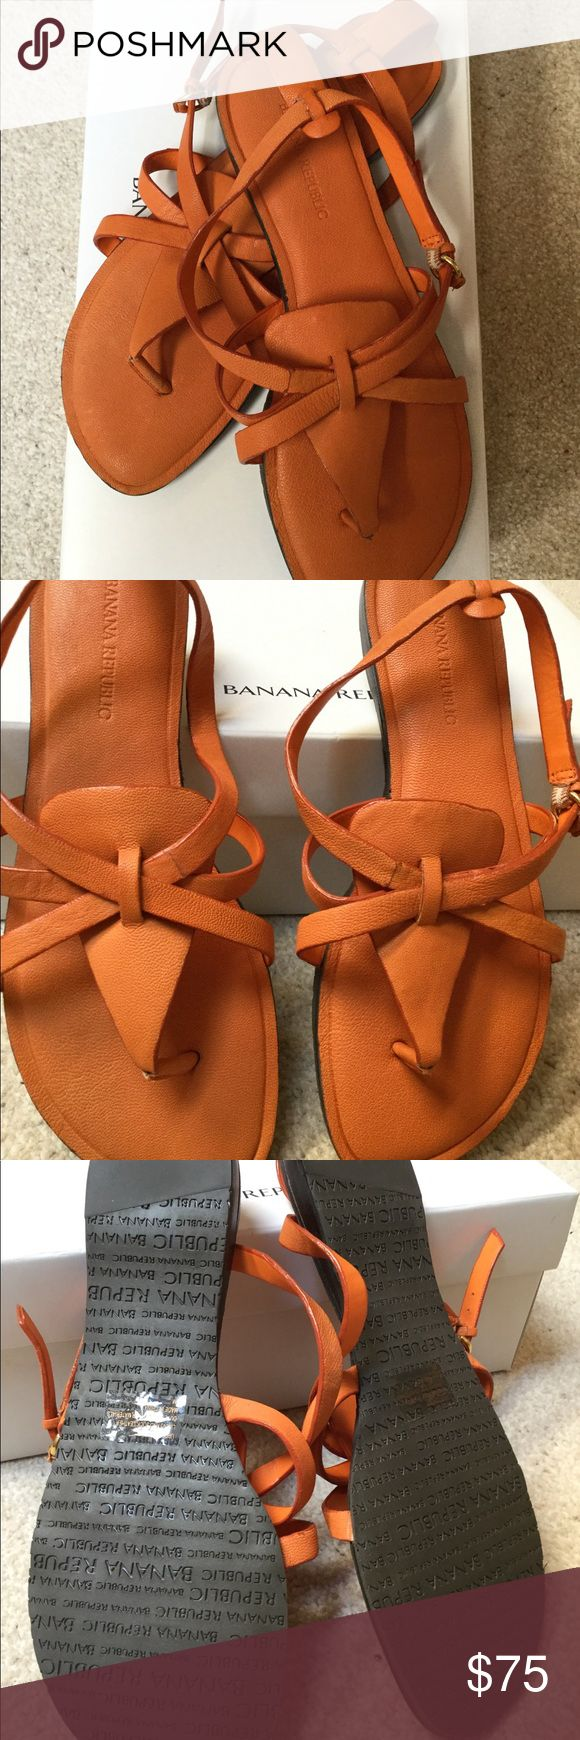 Banana Republic Orange Leather Sandals-Never Wore! Purchased at the Banana Republic store. Never wore and in original manufacturer's box and packaging. Orange color leather and logo rubber sole.  NOTE: Top not included, however, offered in separate listing. Banana Republic Shoes Sandals